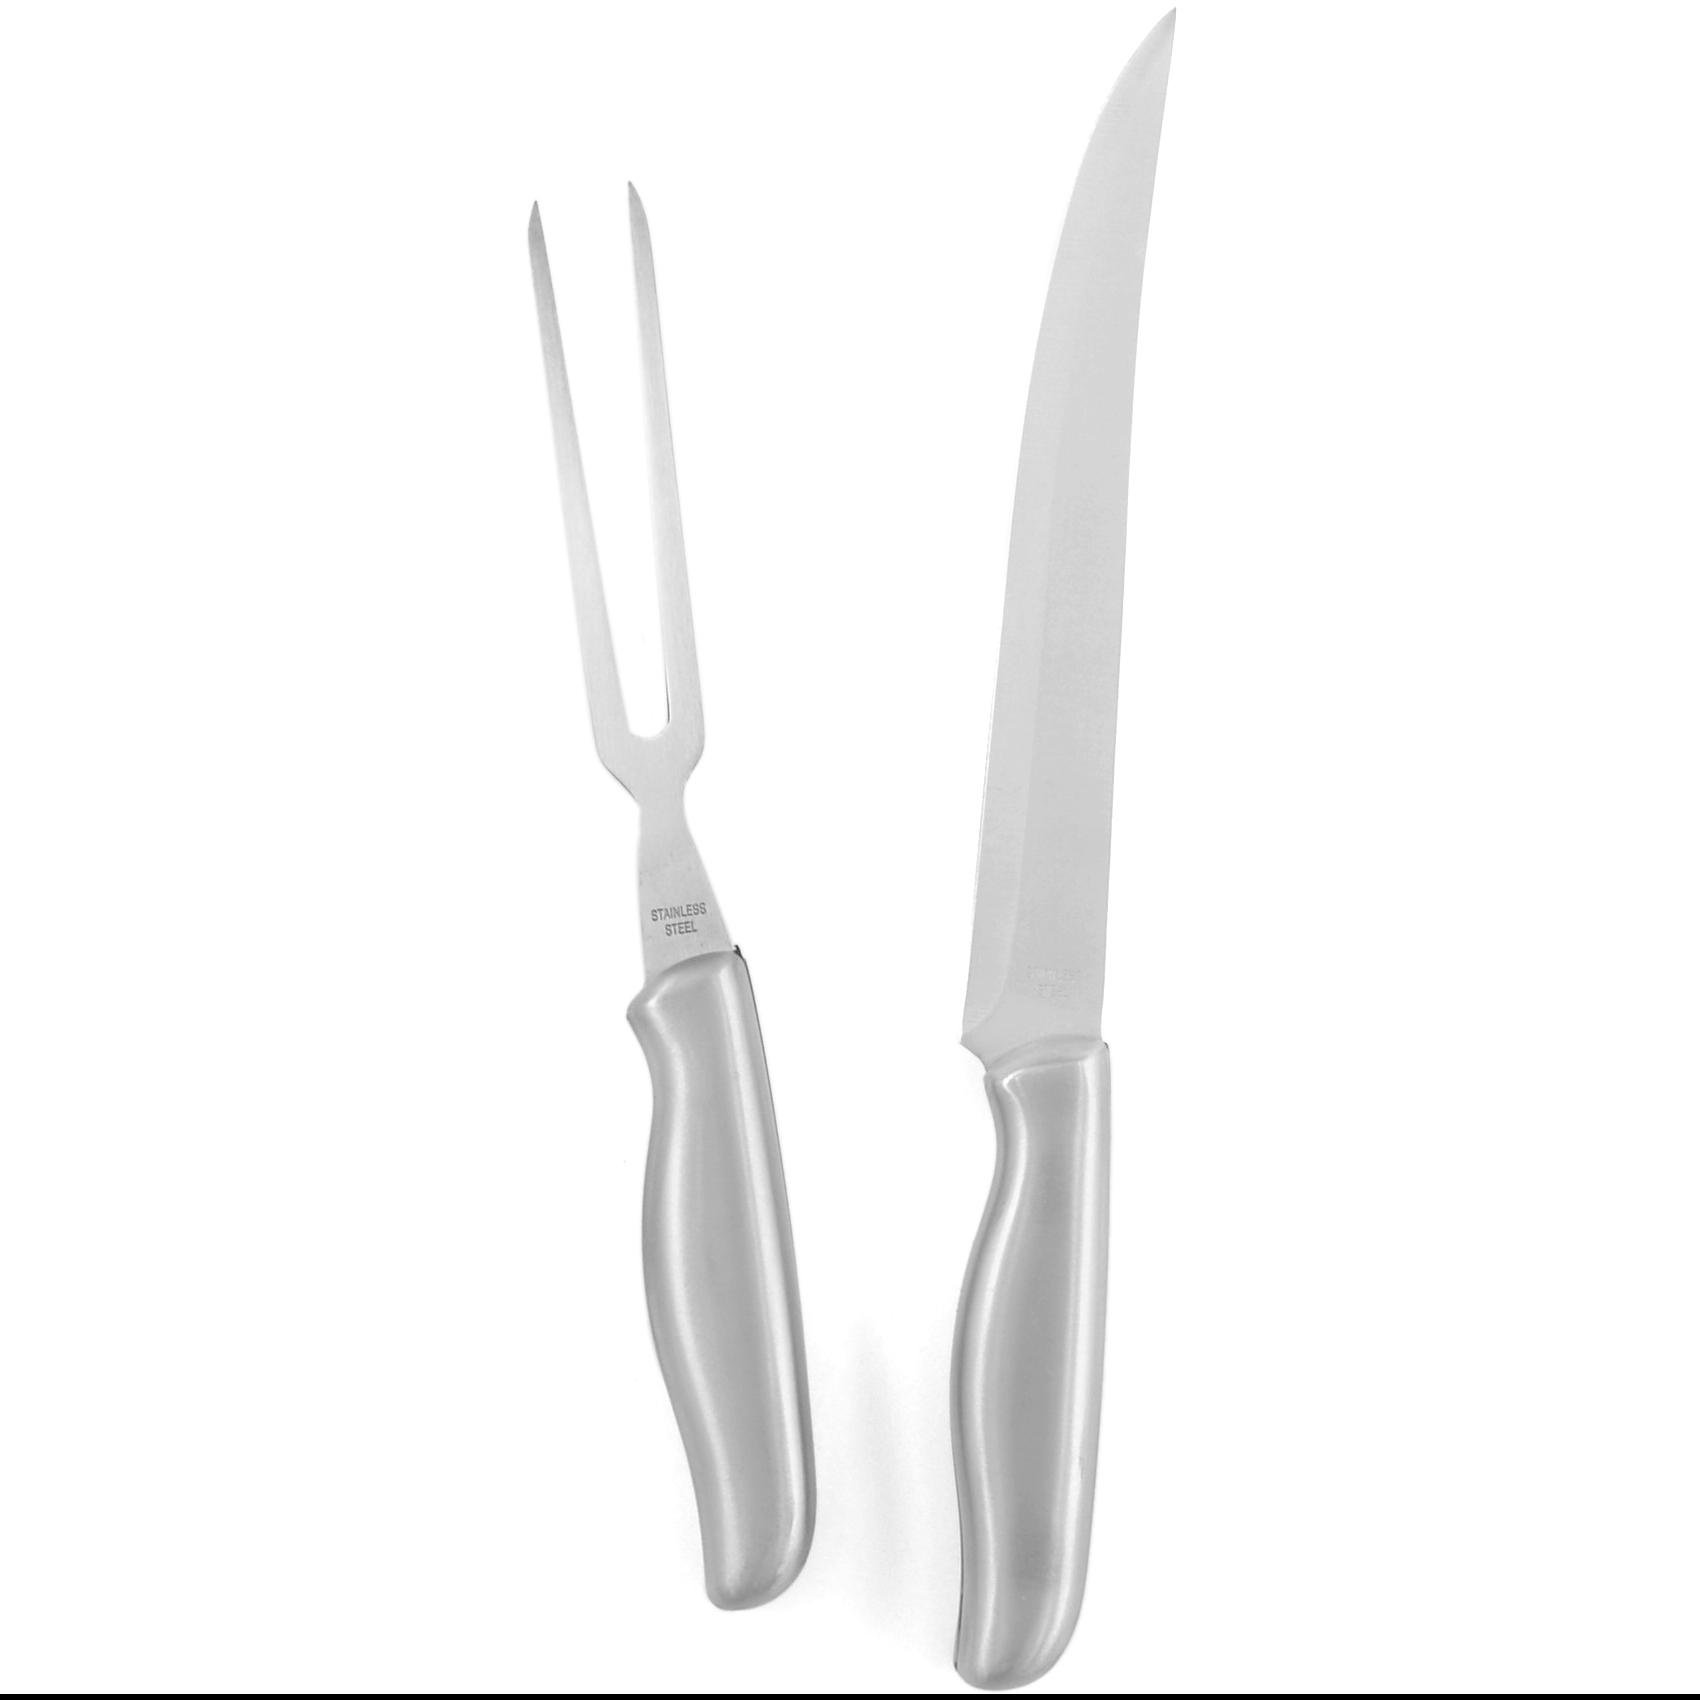 Carvel Hall Stainless Steel Carving Set 2 Piece Set